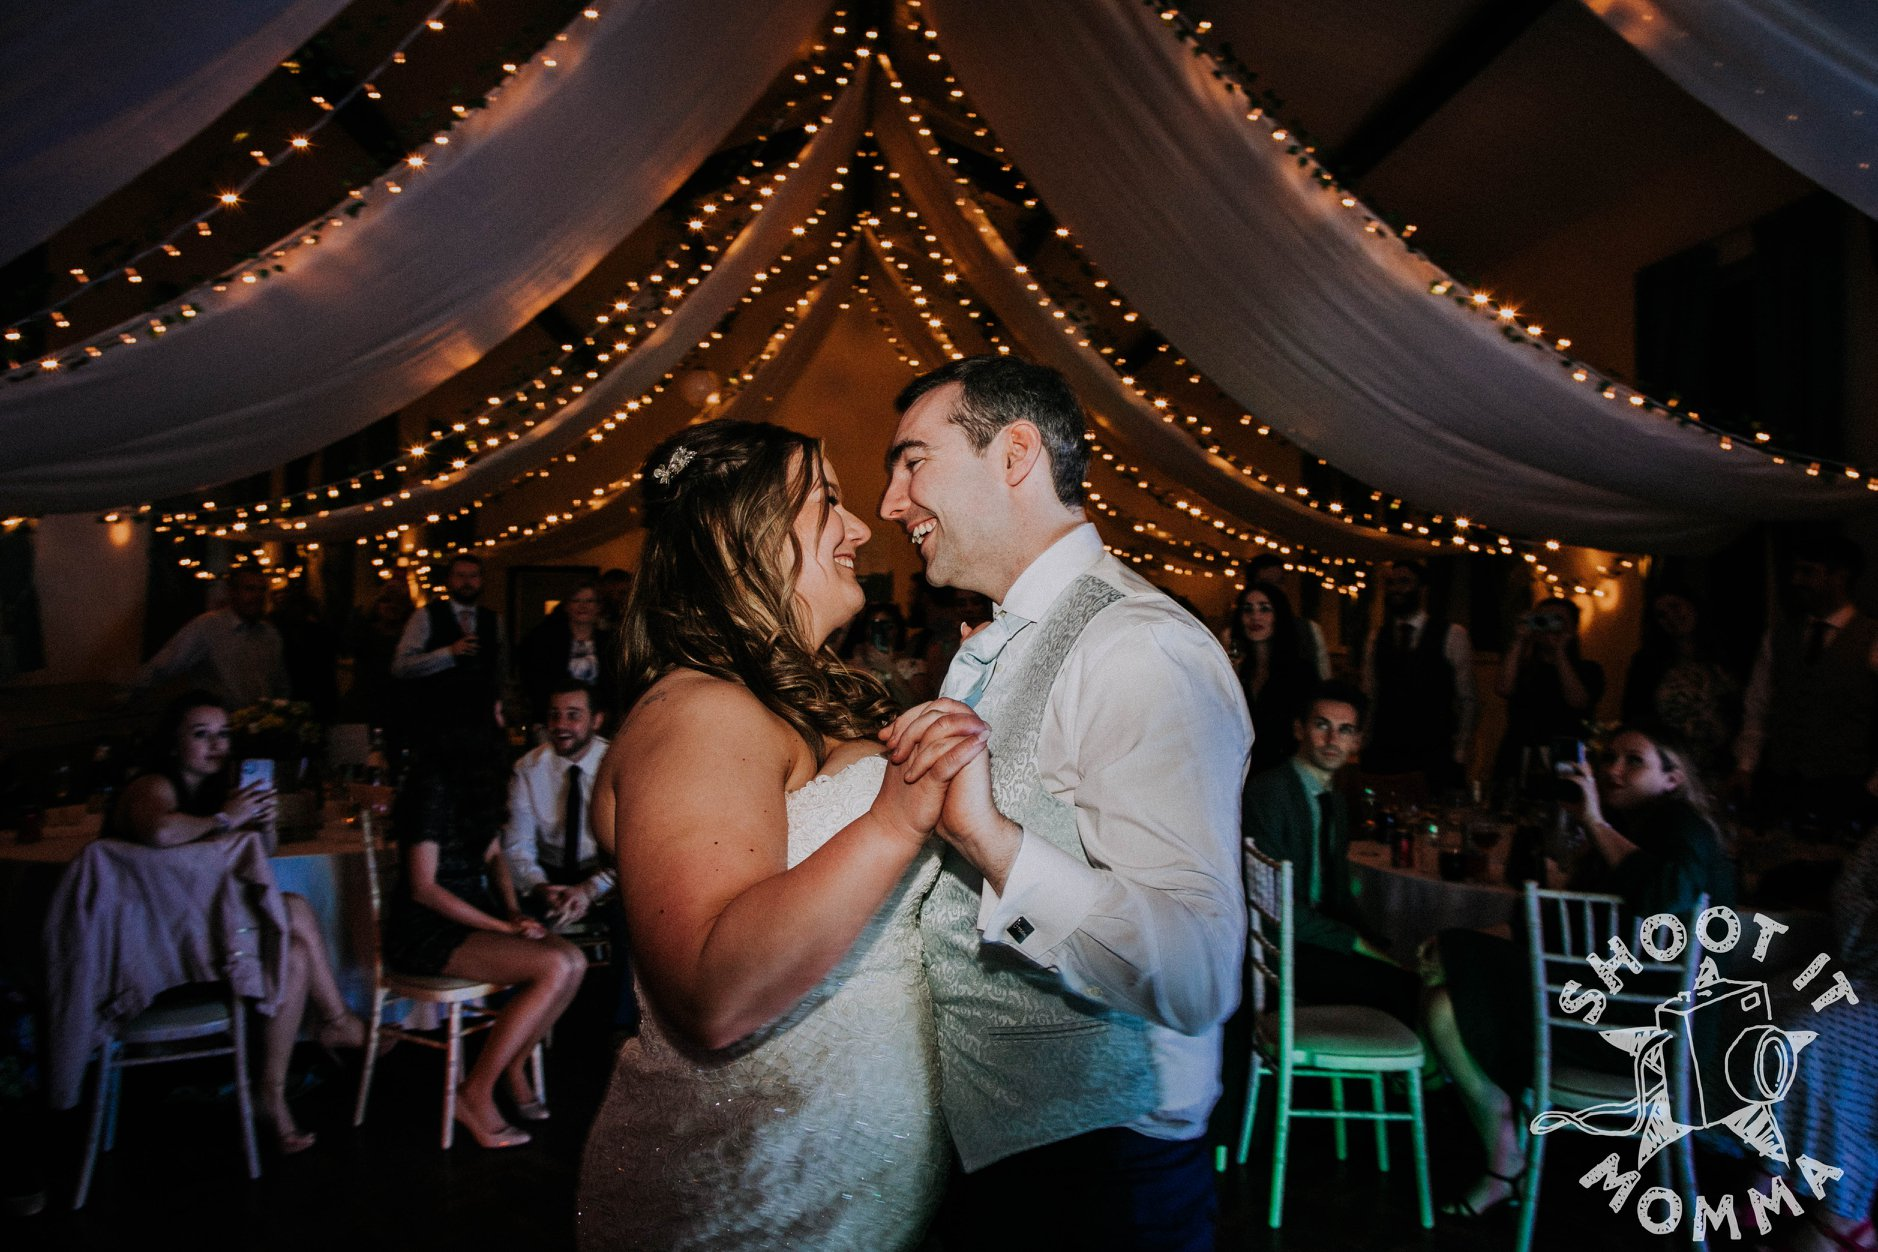 M&W village hall wedding day as captured by Shoot it Momma photography - first dance captured smiling